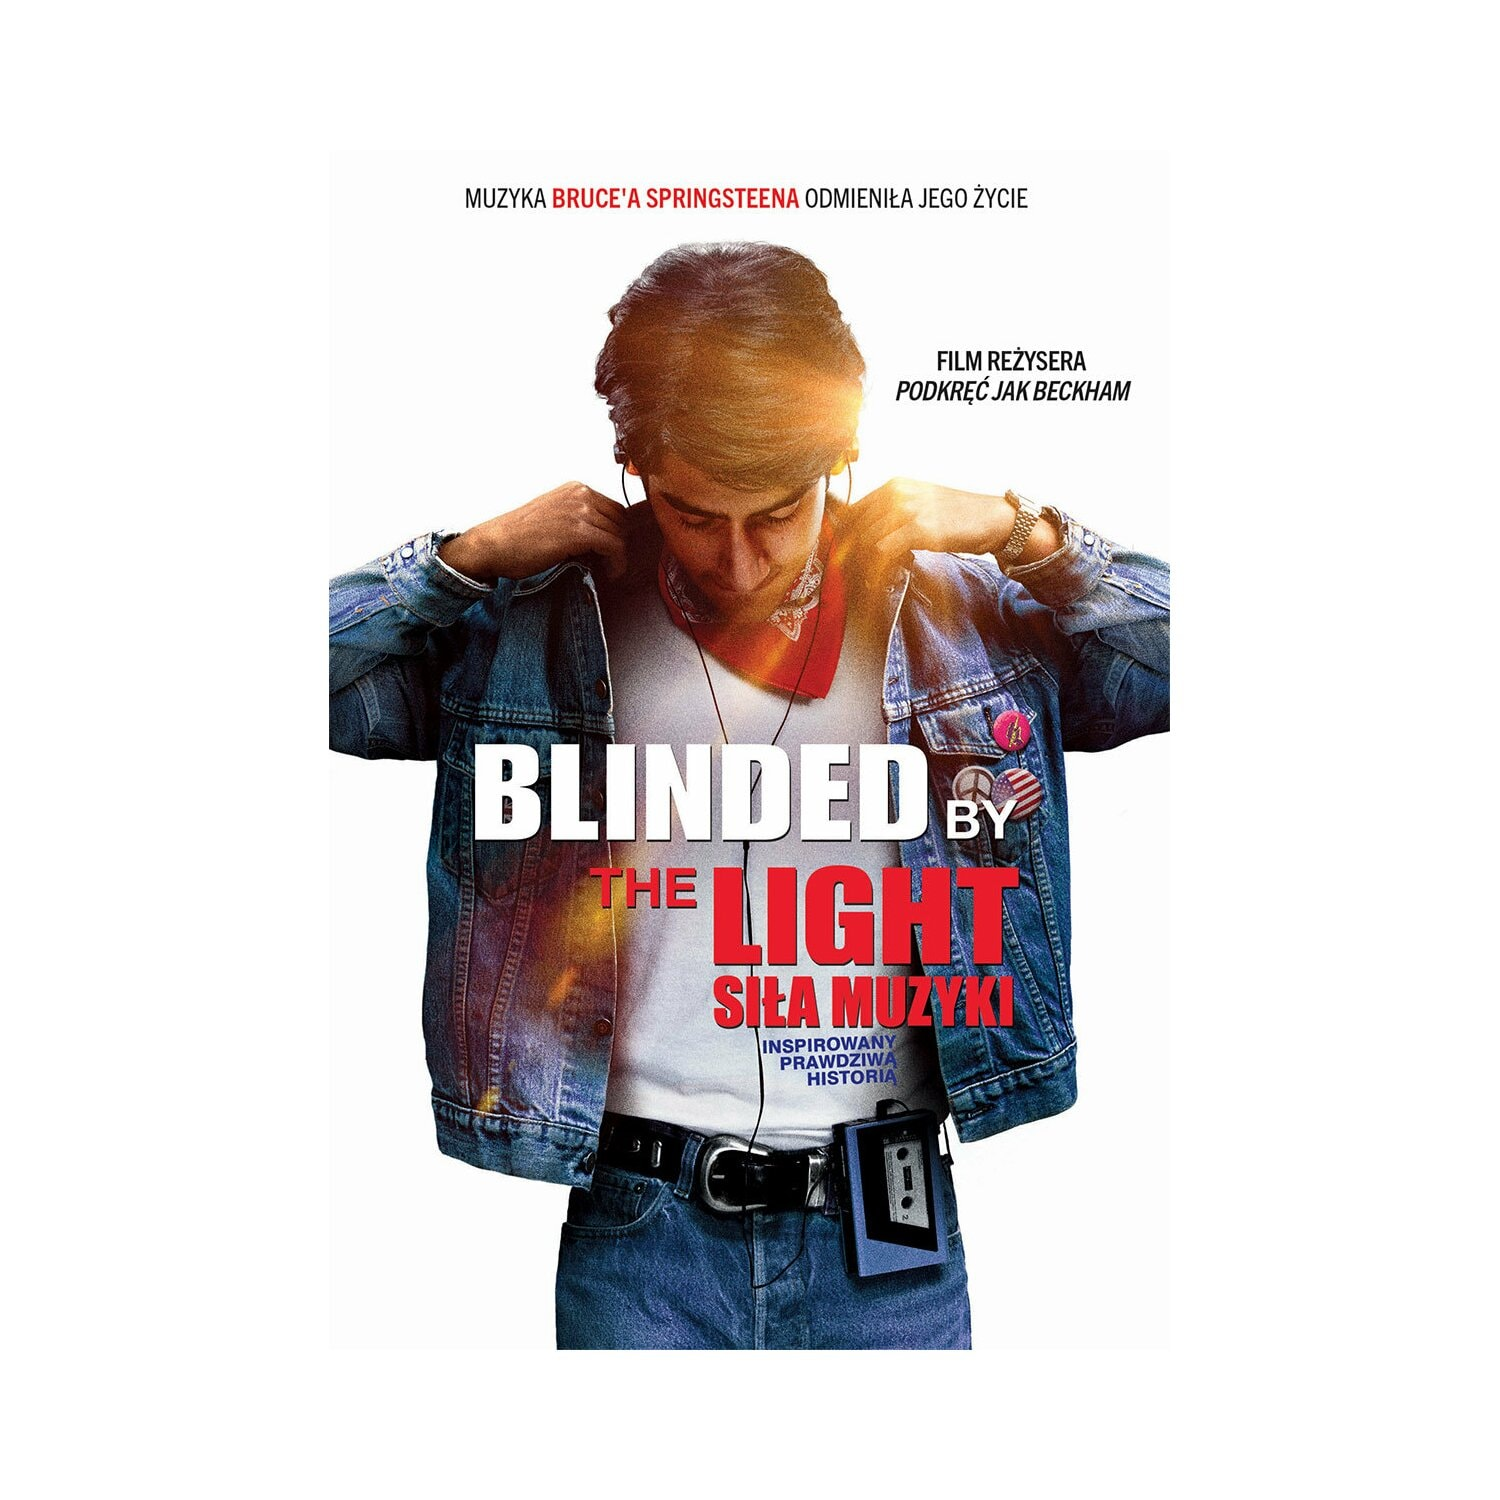 Blinded by the light. Siła muzyki (DVD)